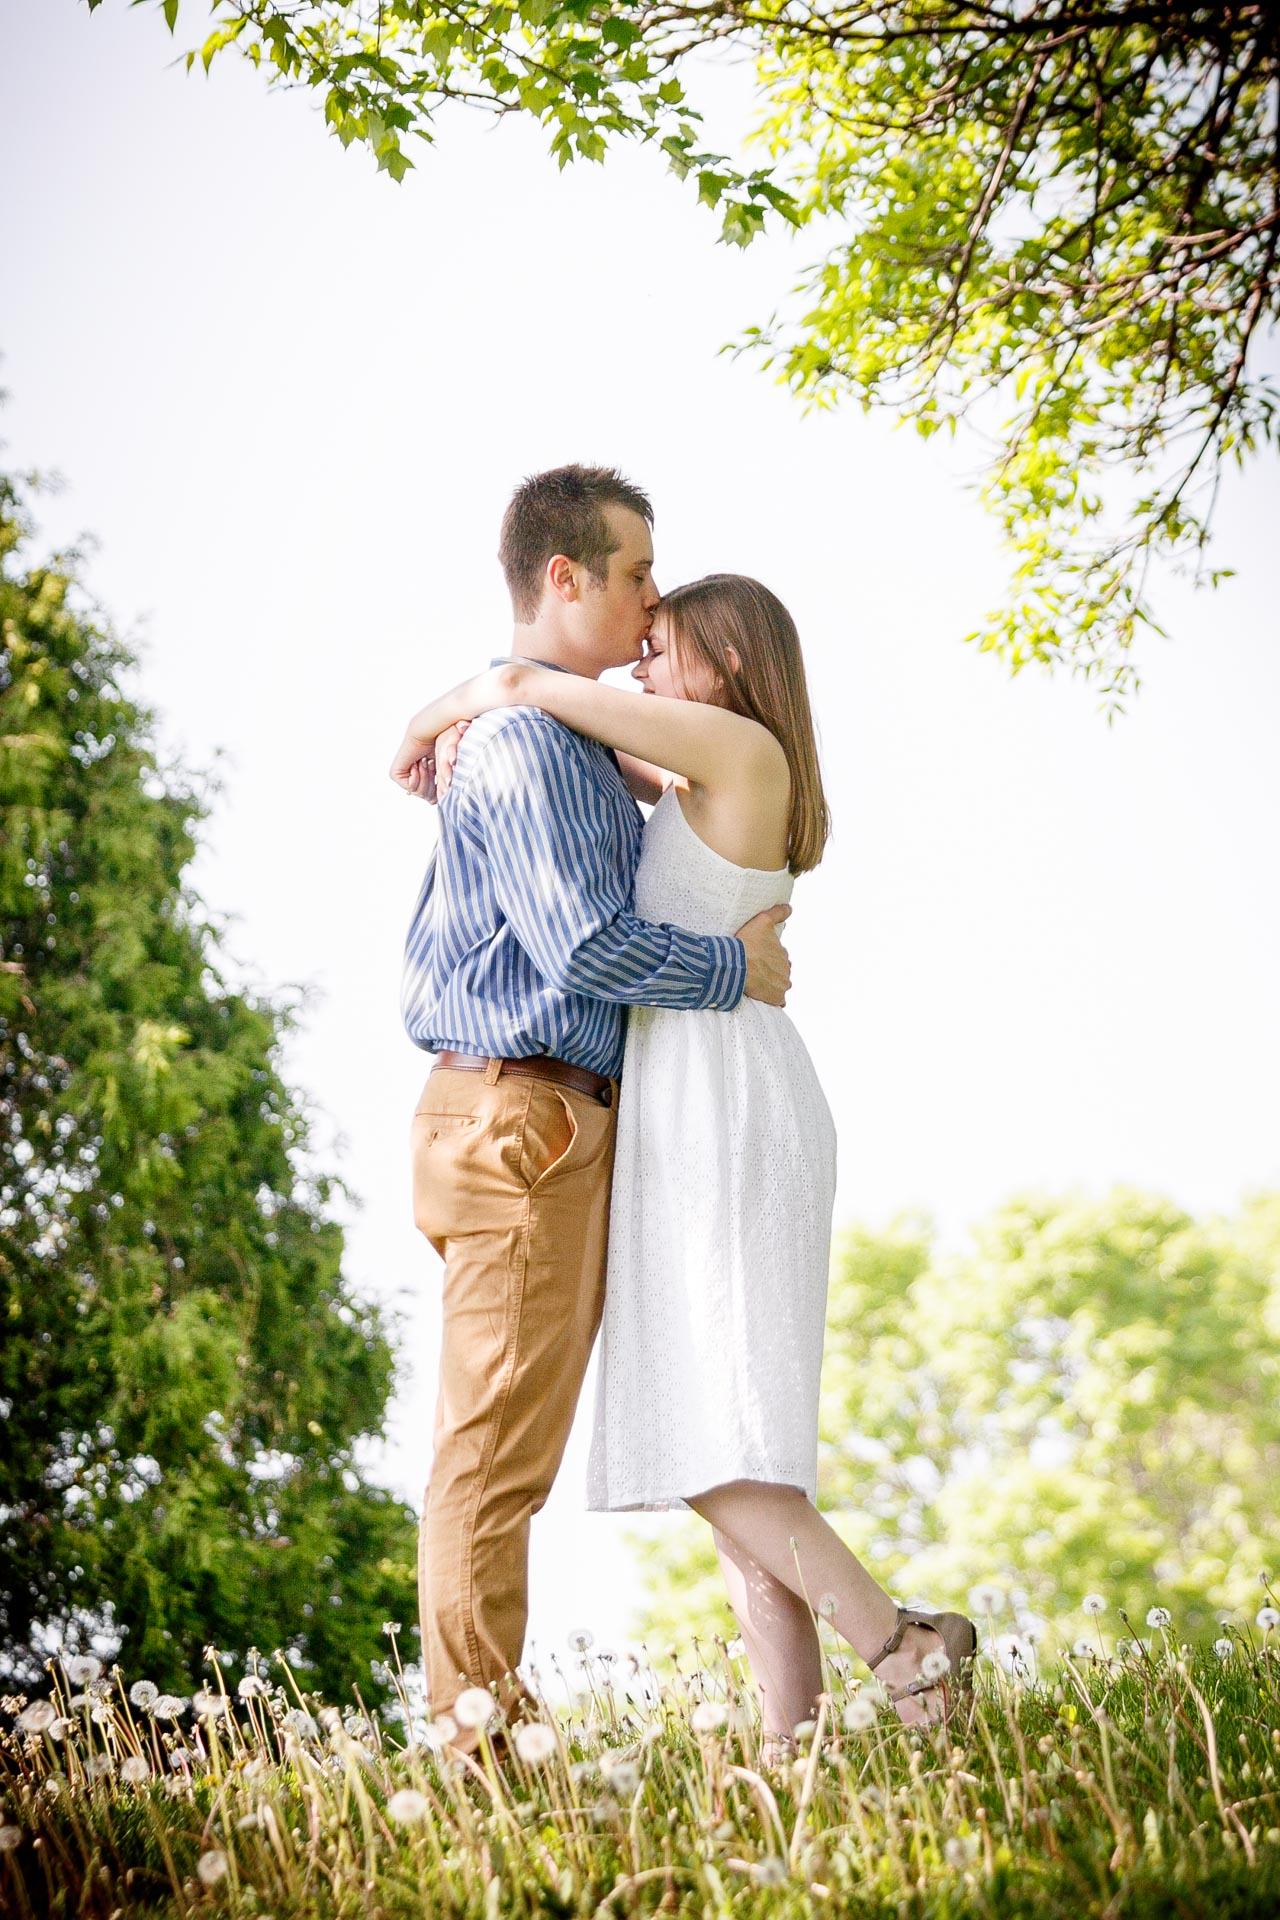 engagement-photos-voyageur-park-de-pere-wisconsin-wi-adam-shea-photography-adam-shea-photography-green-bay-appleton-neenah-photographer-05.jpg